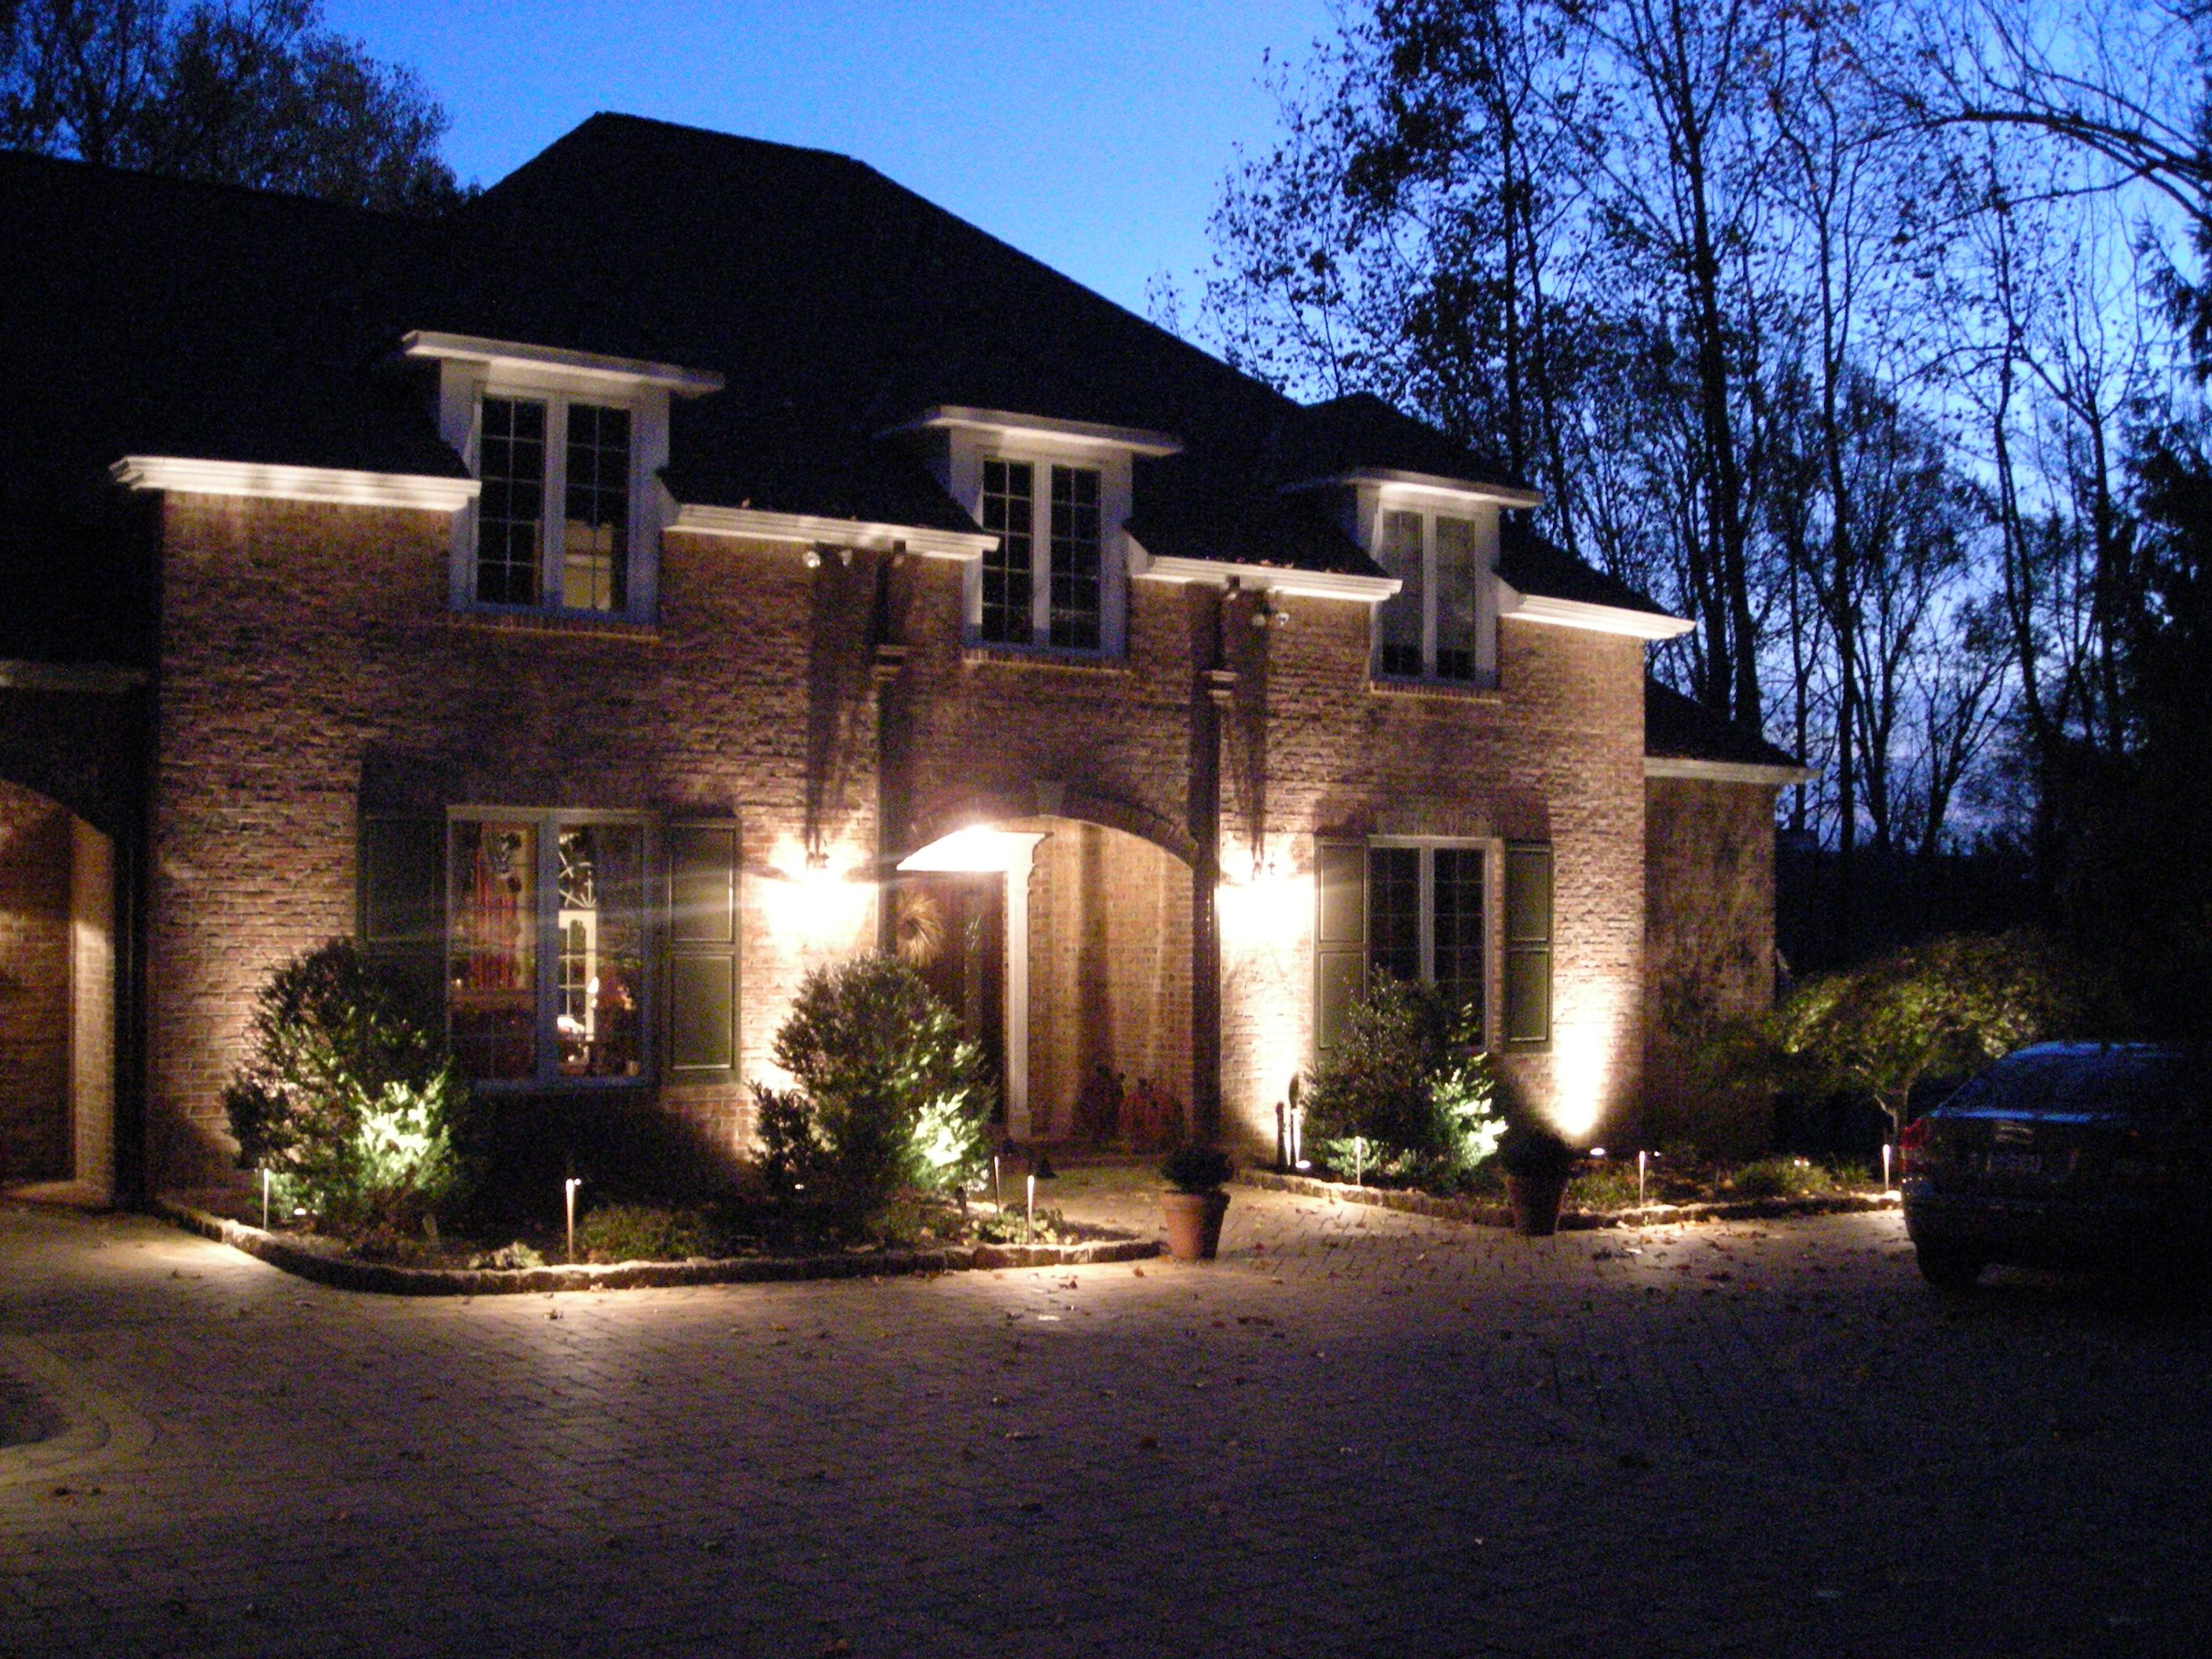 exterior house lighting design. Convenient Front Yard Lighting  for Convenience and